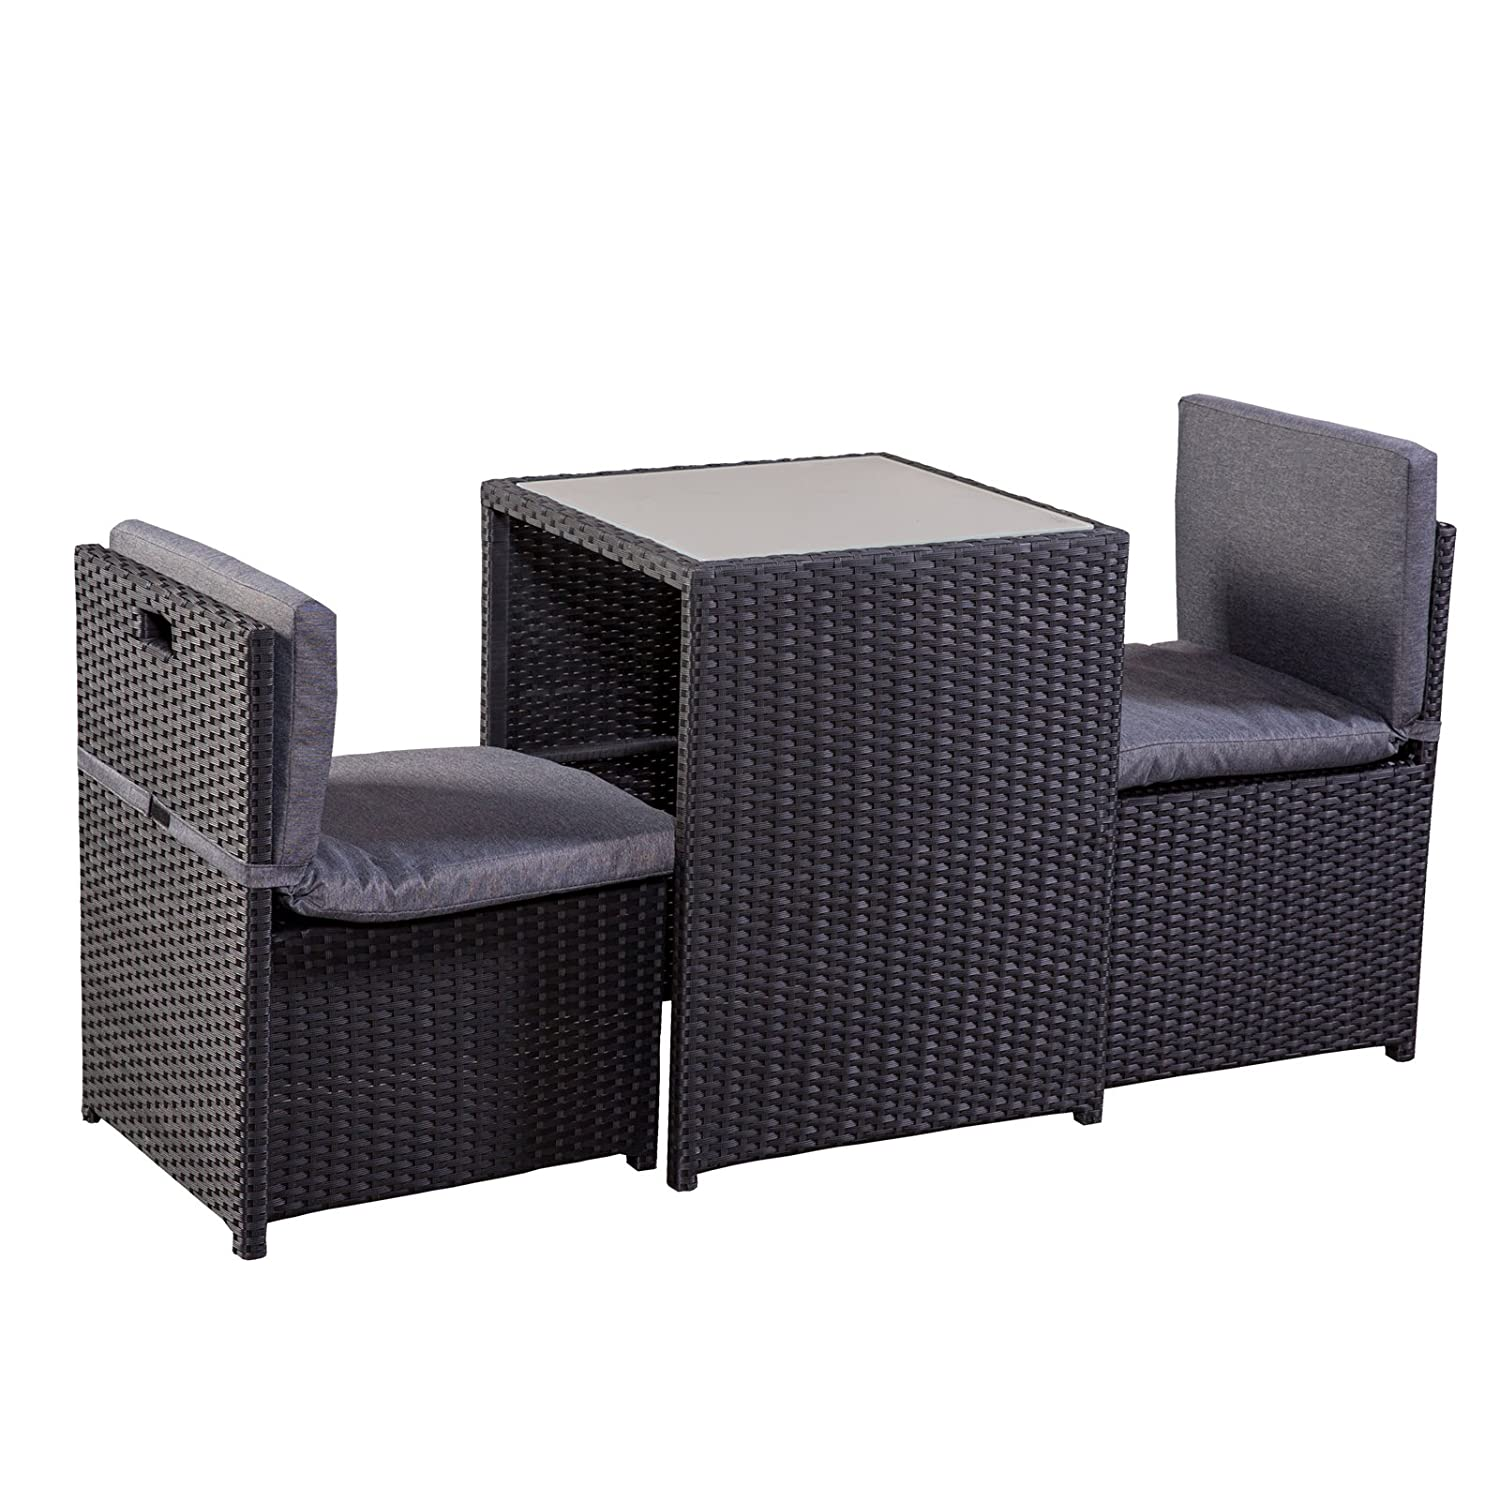 balkonm bel set balkonset terrassenm bel platzsparend box. Black Bedroom Furniture Sets. Home Design Ideas